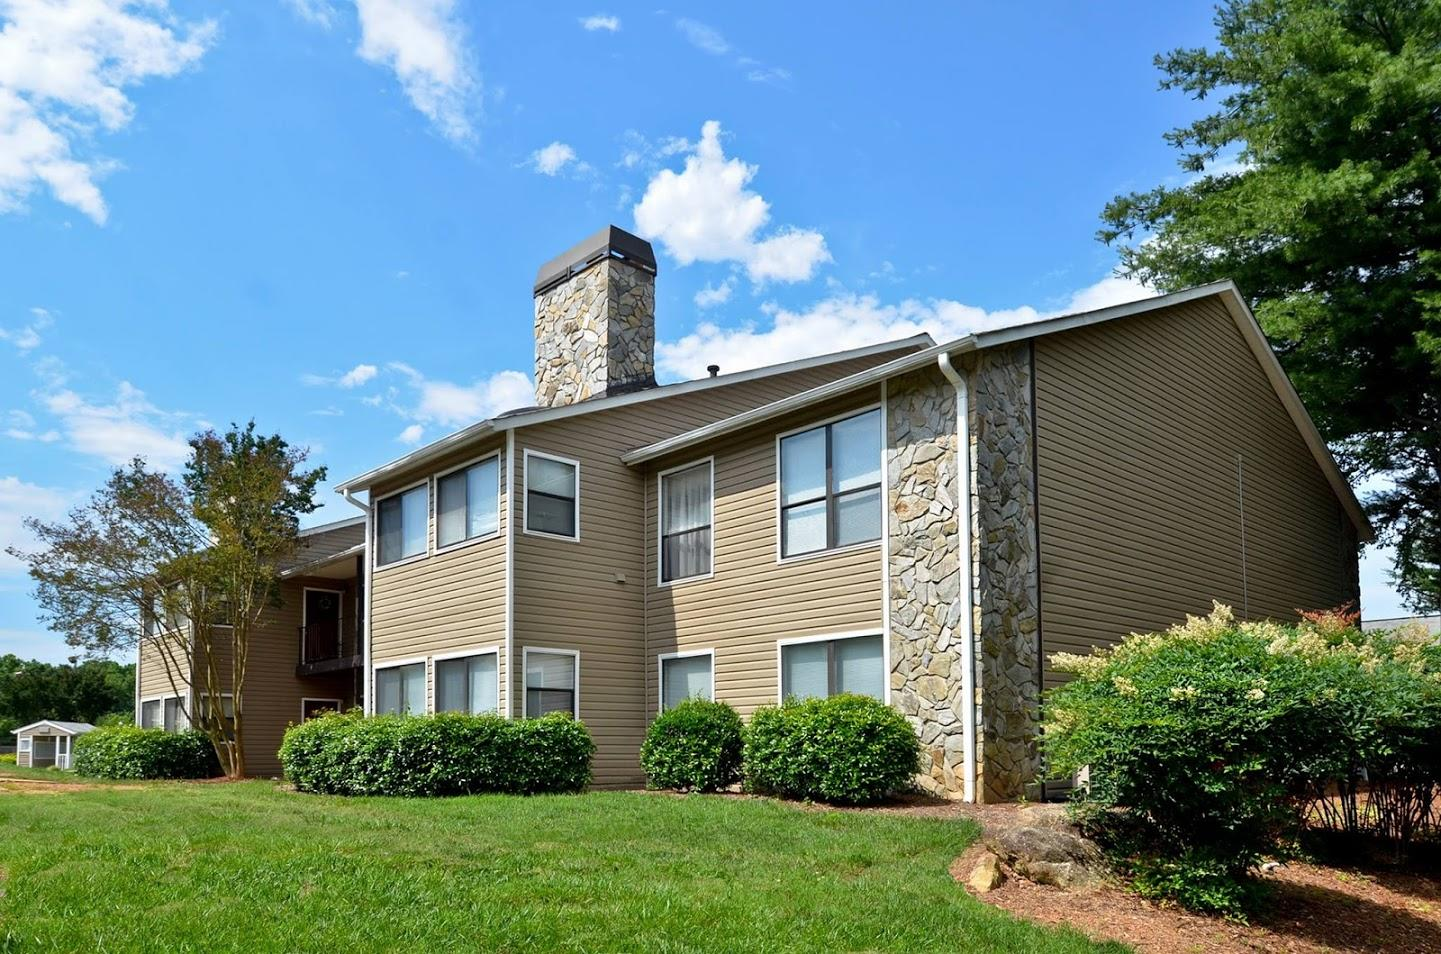 Apartment Homes Greenville Sc